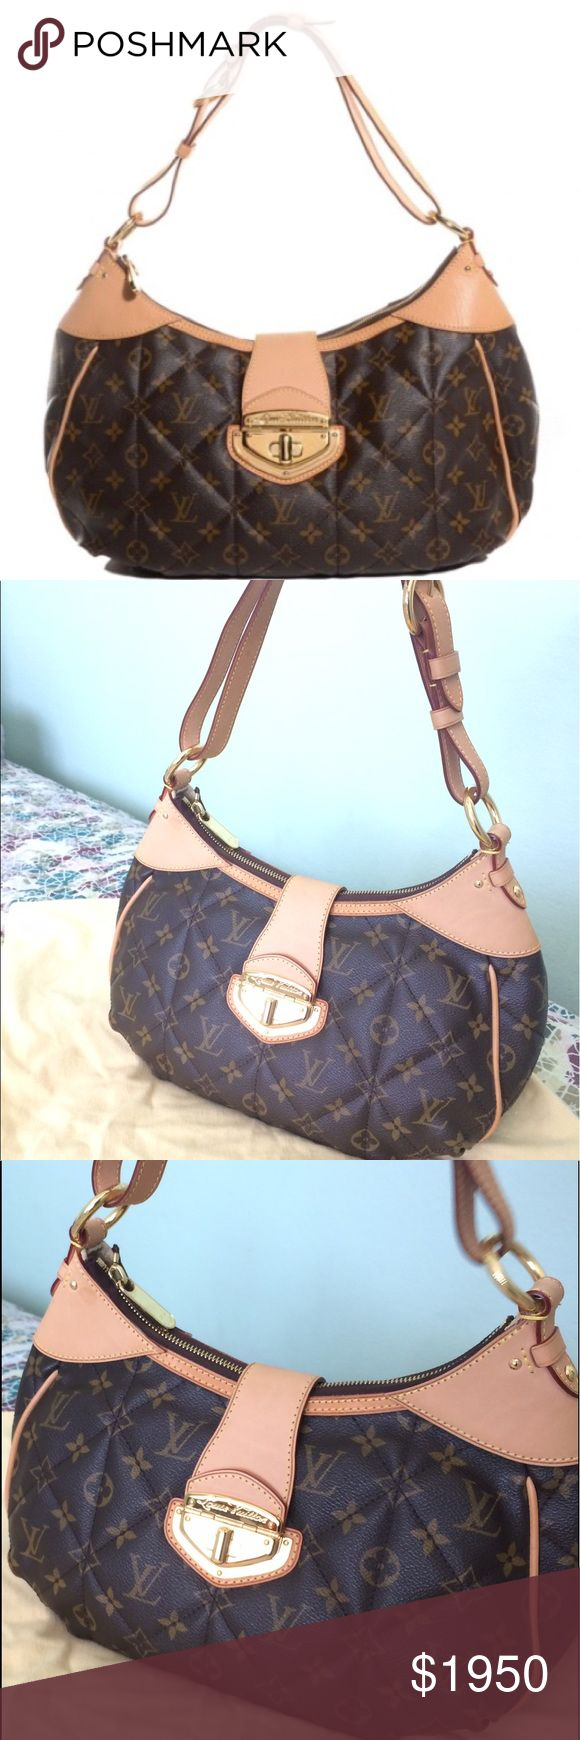 LOUIS VUITTON ETOILE PM Beautiful and like new.... Not sure if I want to let it go yet but might consider trading for something I really really like 😊 Louis Vuitton Bags